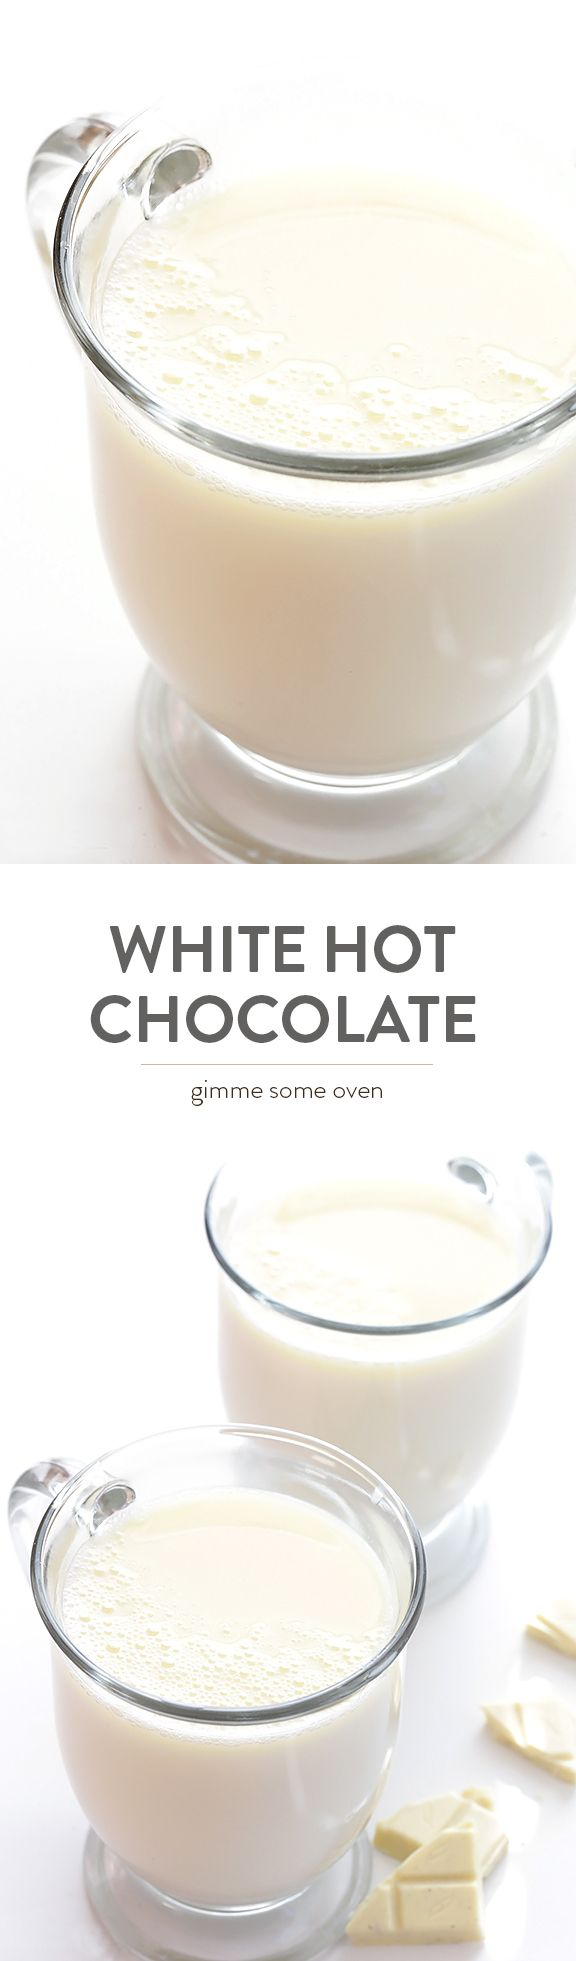 This Homemade White Hot Chocolate recipe is super easy to make with 3 ingredients, and it's way cheaper than the coffee shop version! | gimmesomeoven.com